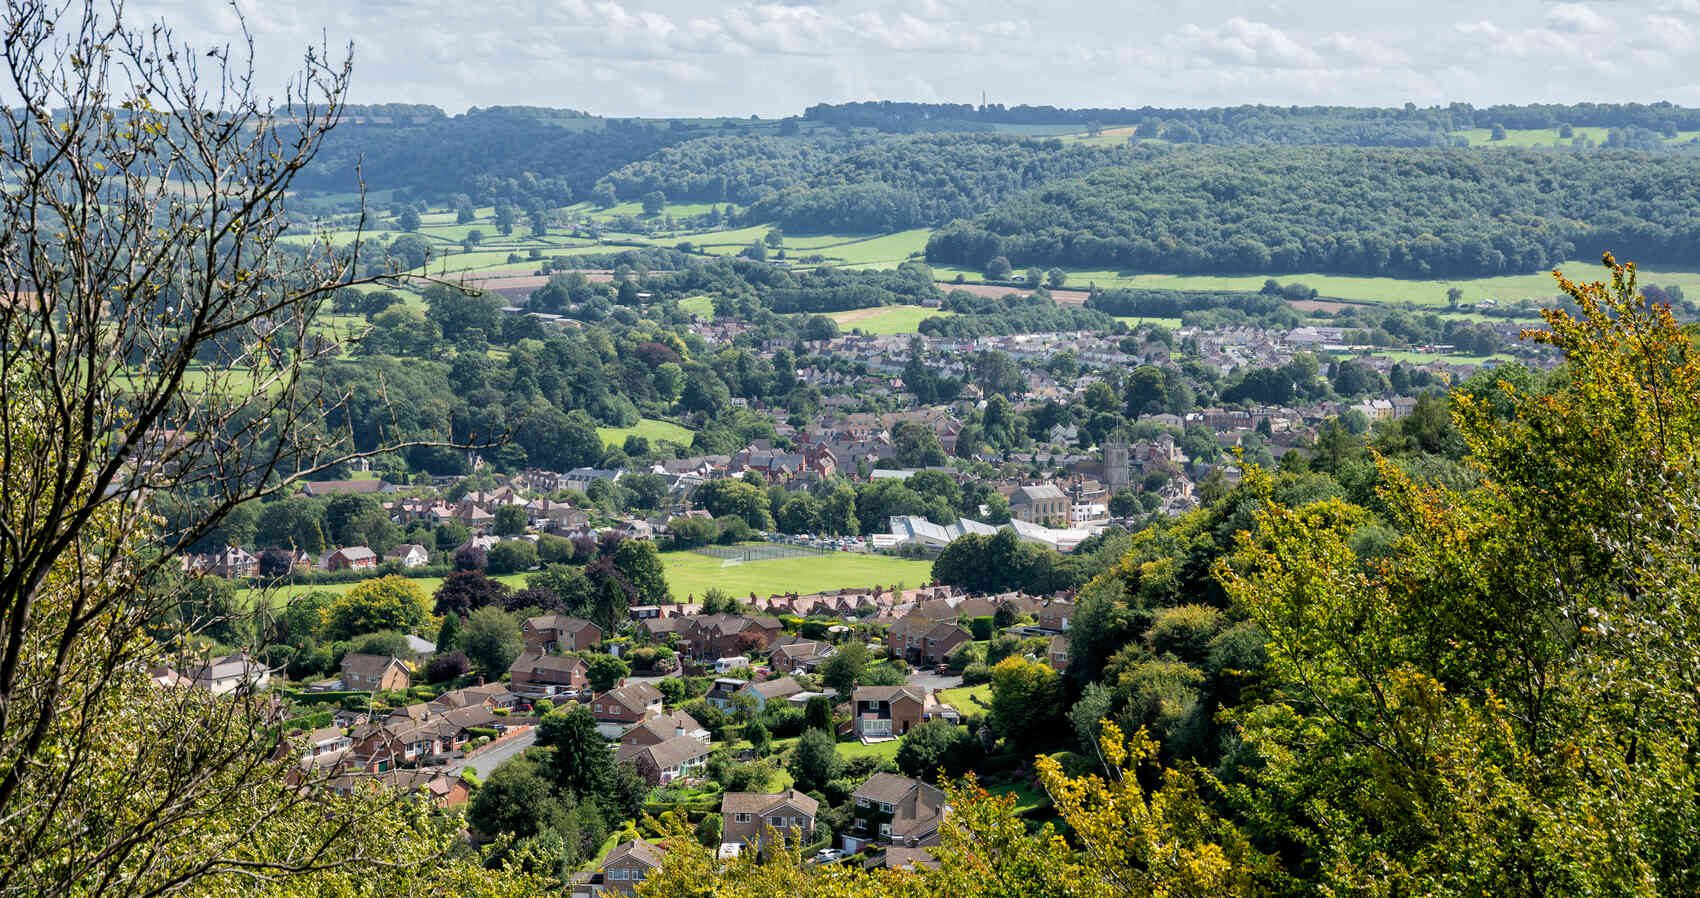 View of the Dursley in the Cotswolds Gloucestershire